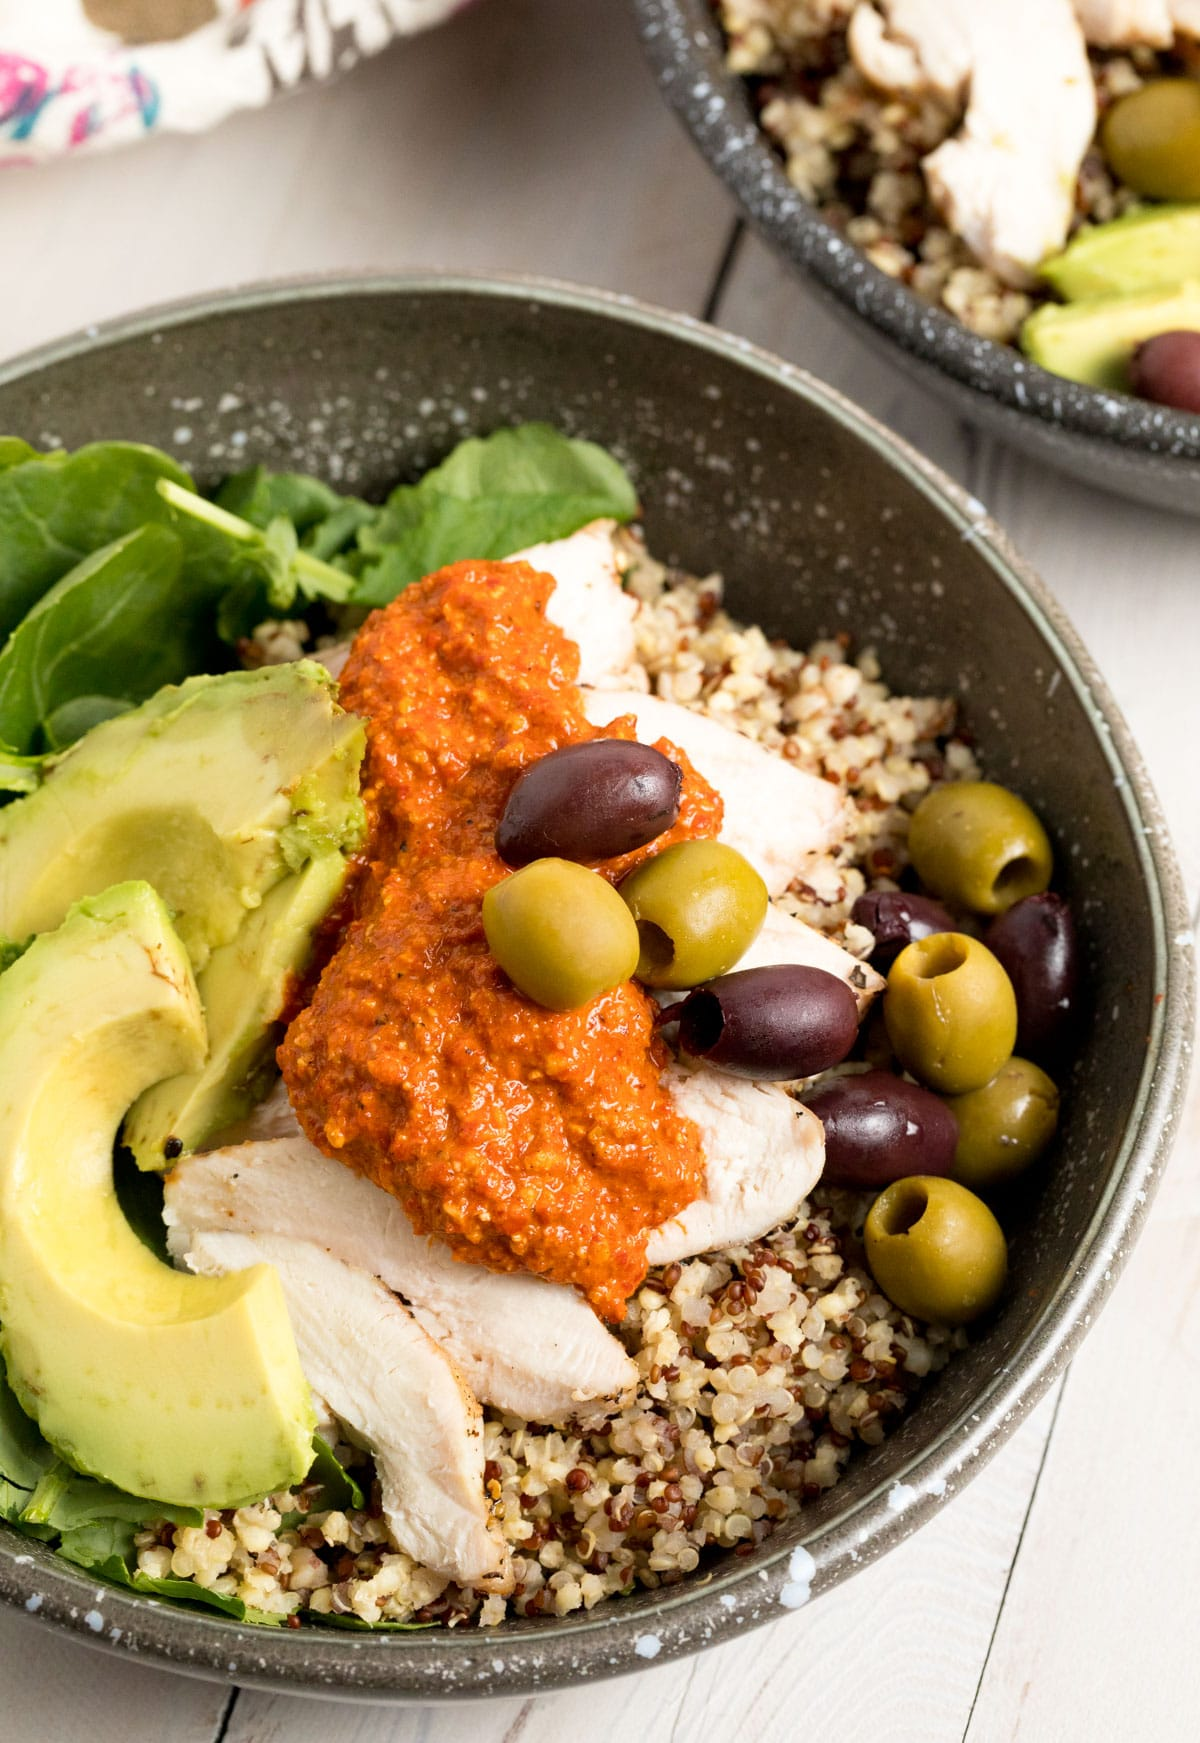 Healthy Grilled Chicken Quinoa Bowls with Romesco Sauce Recipe #ASpicyPerspective #healthy #skinny